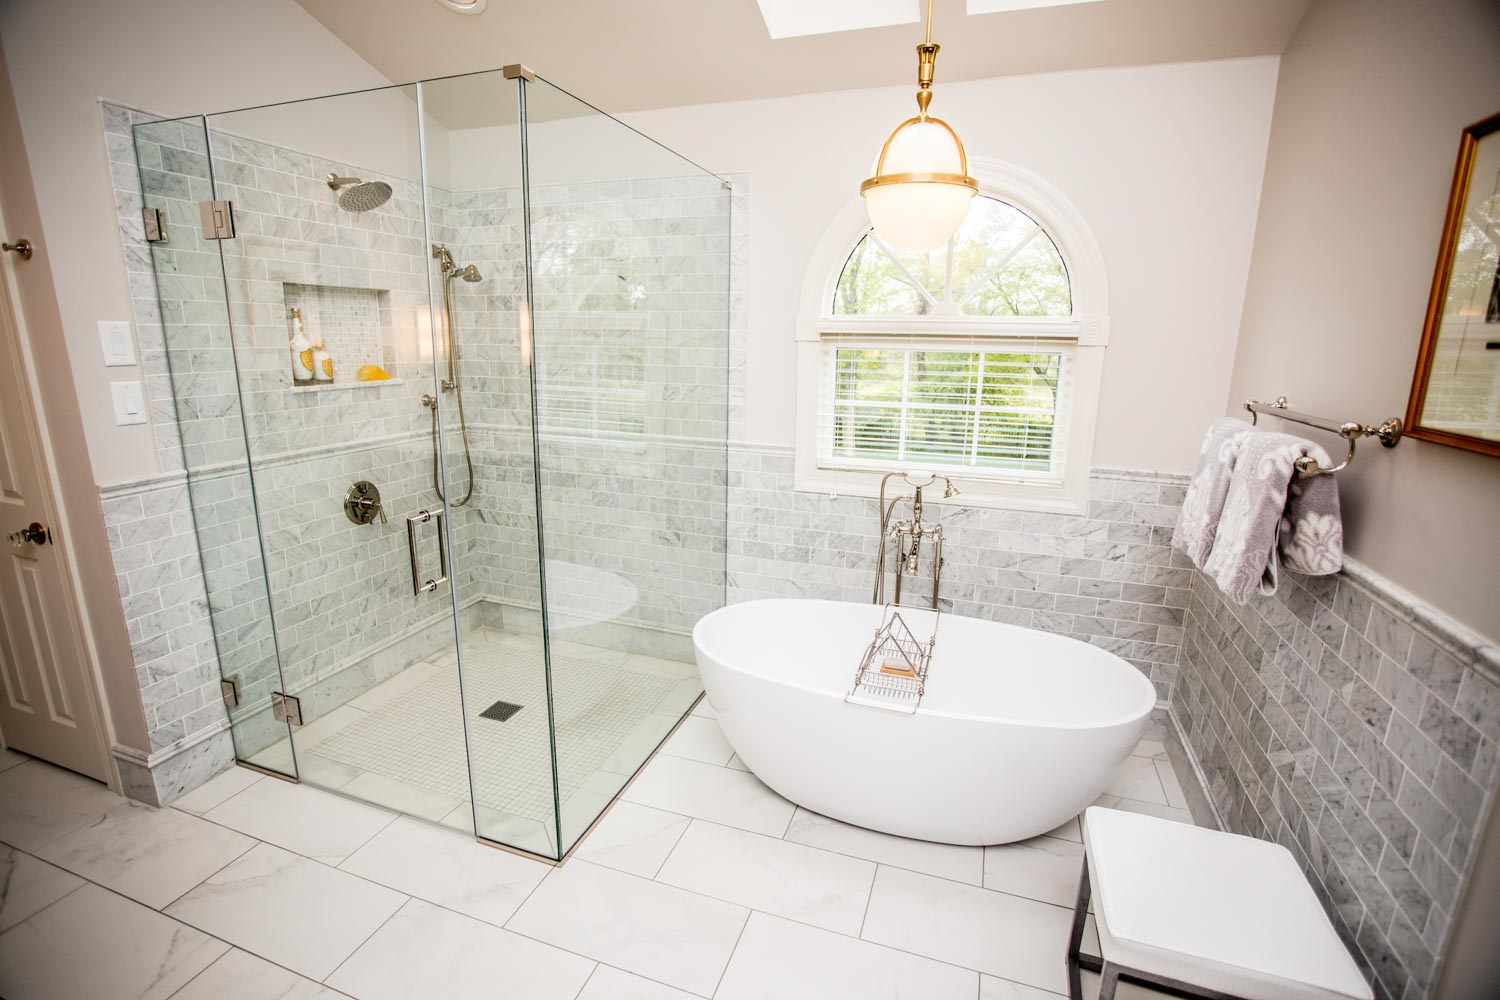 Bathroom Remodeling Company Bucks County | Bathroom Renovation ...